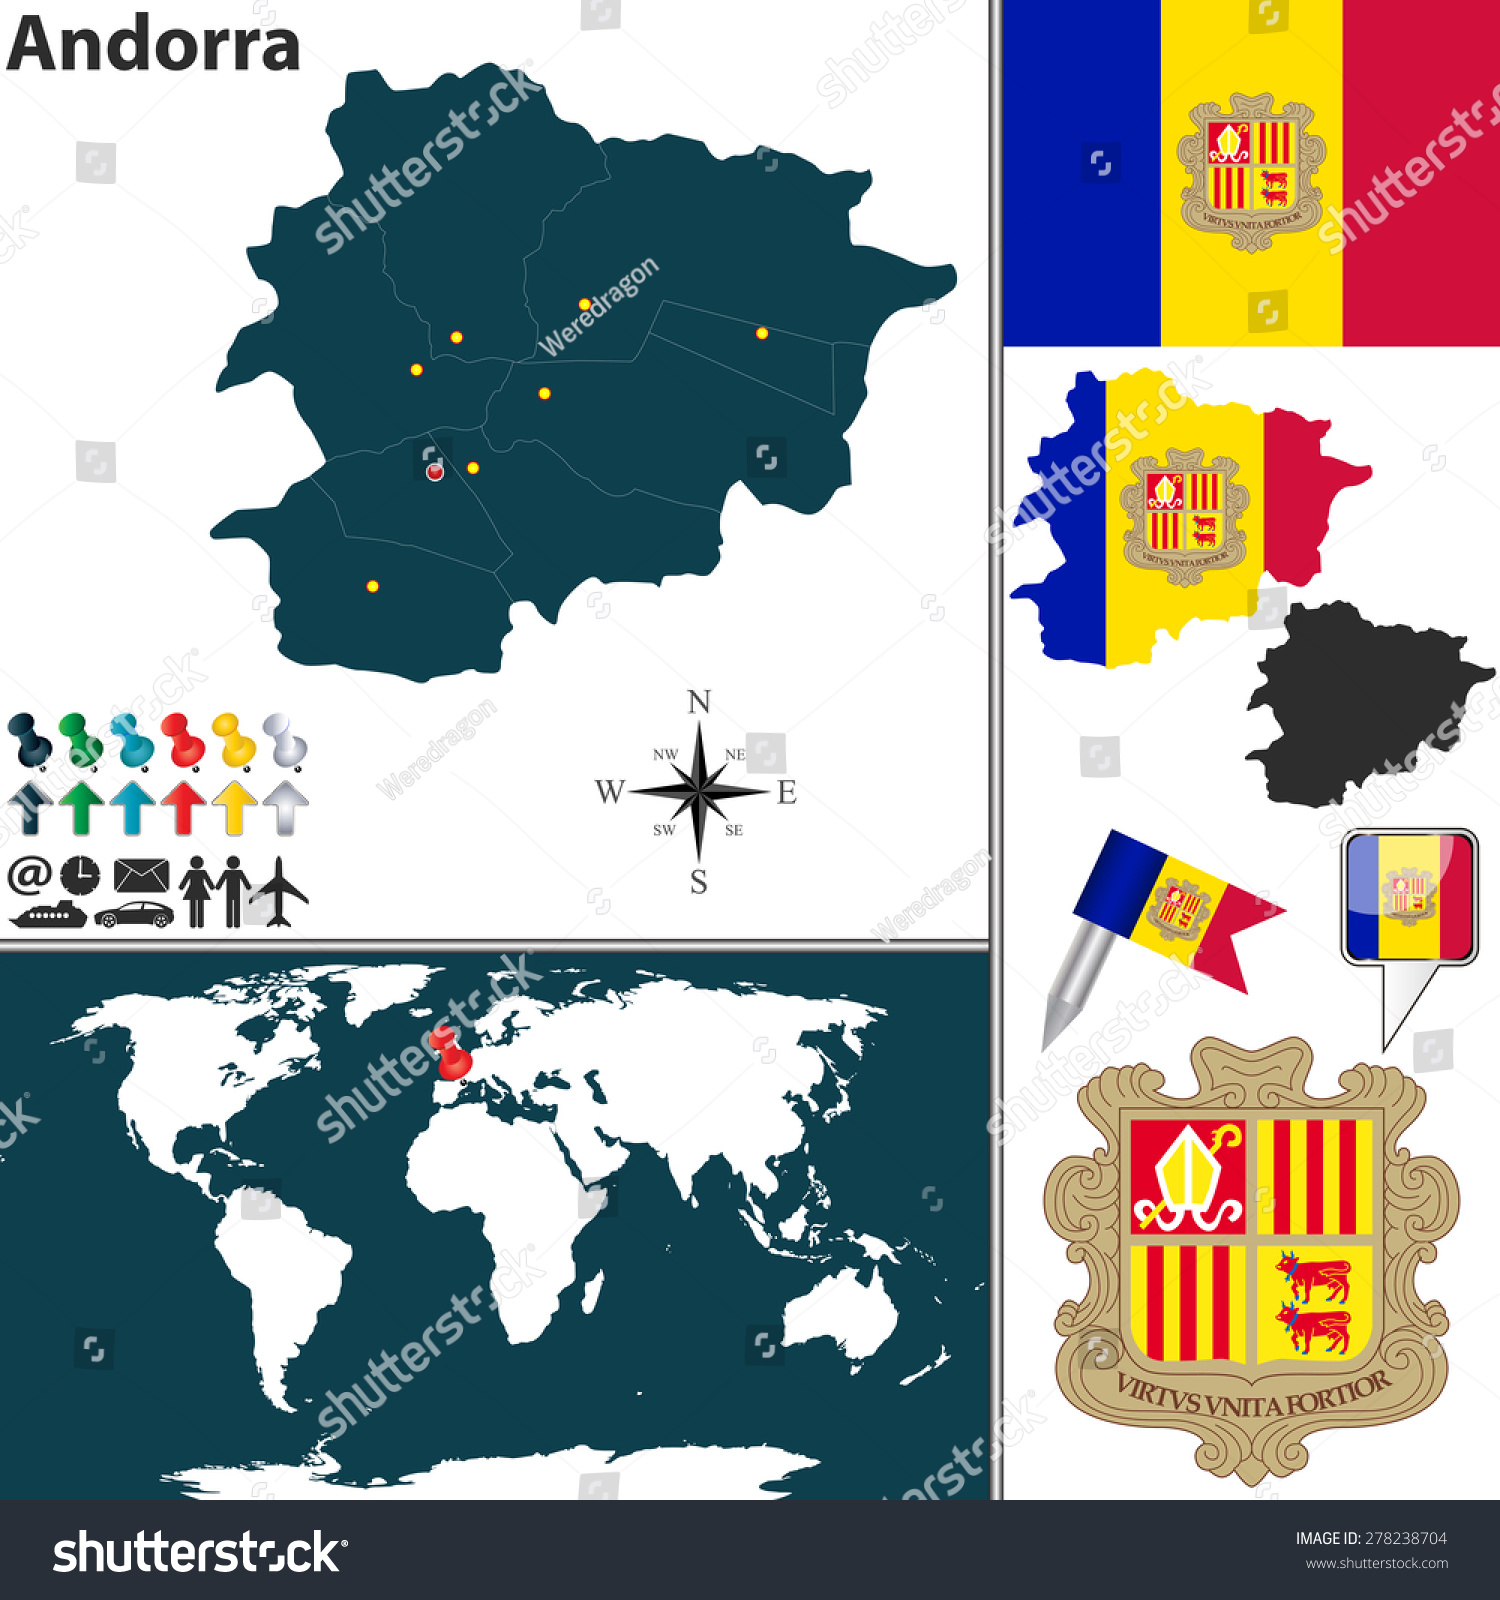 Vector map andorra regions coat arms vectores en stock 278238704 vector map of andorra with regions coat of arms and location on world map gumiabroncs Images